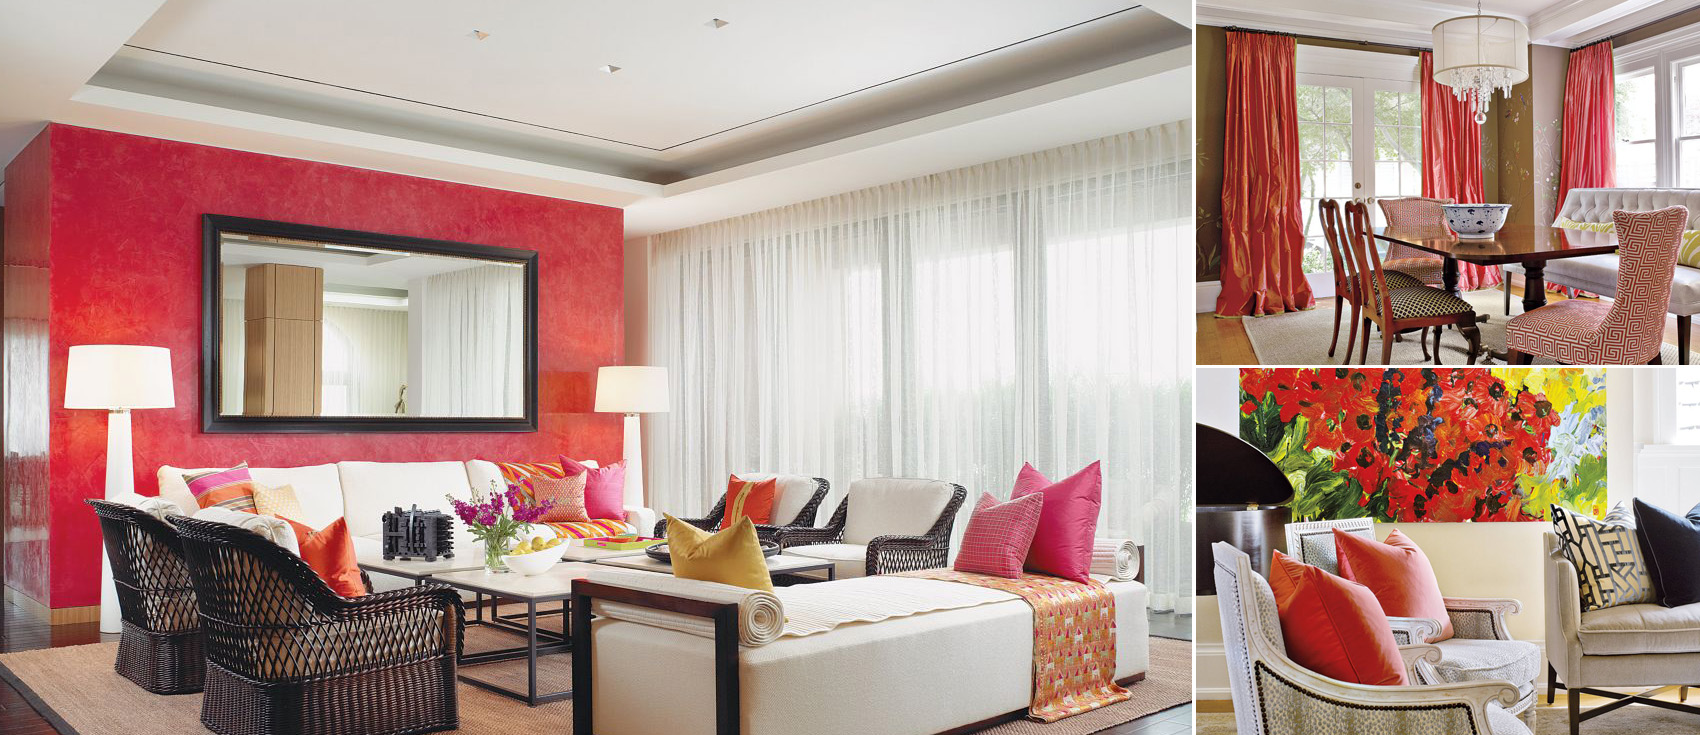 Red Decor | Decorating with Red